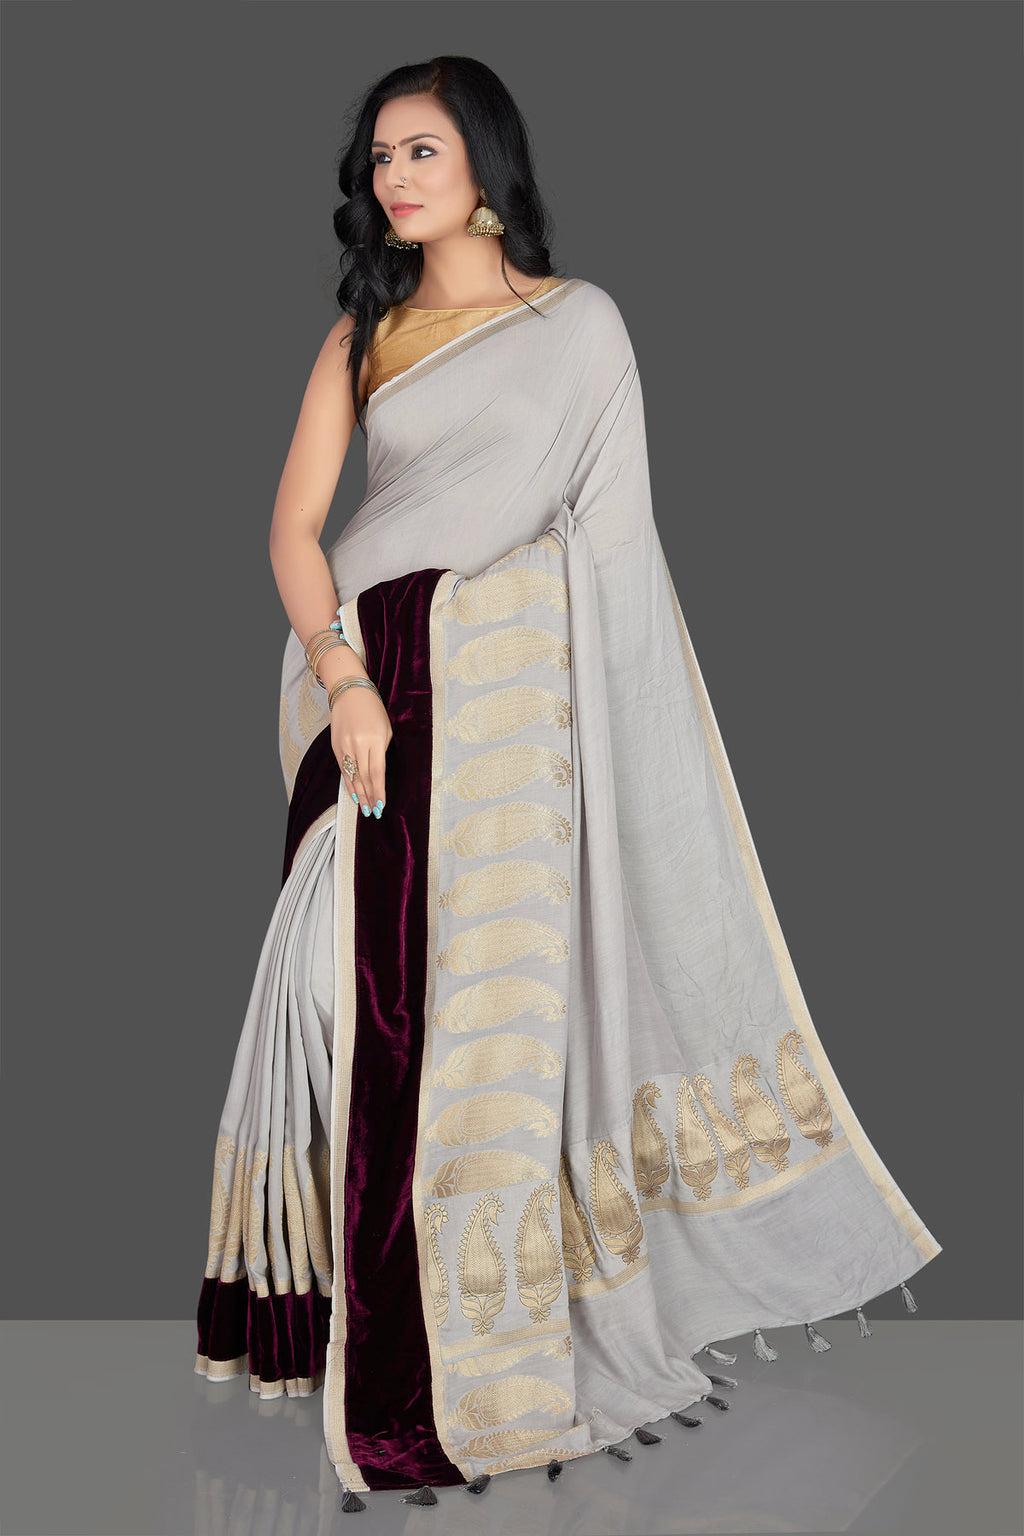 Shop elegant light grey muga Banarsi saree online in USA with velvet border and velvet blouse. Radiate elegance with designer sarees with blouse, Banarasi muga sarees from Pure Elegance Indian fashion boutique in USA. We bring a especially curated collection of ethnic sarees for Indian women in USA under one roof!-full view